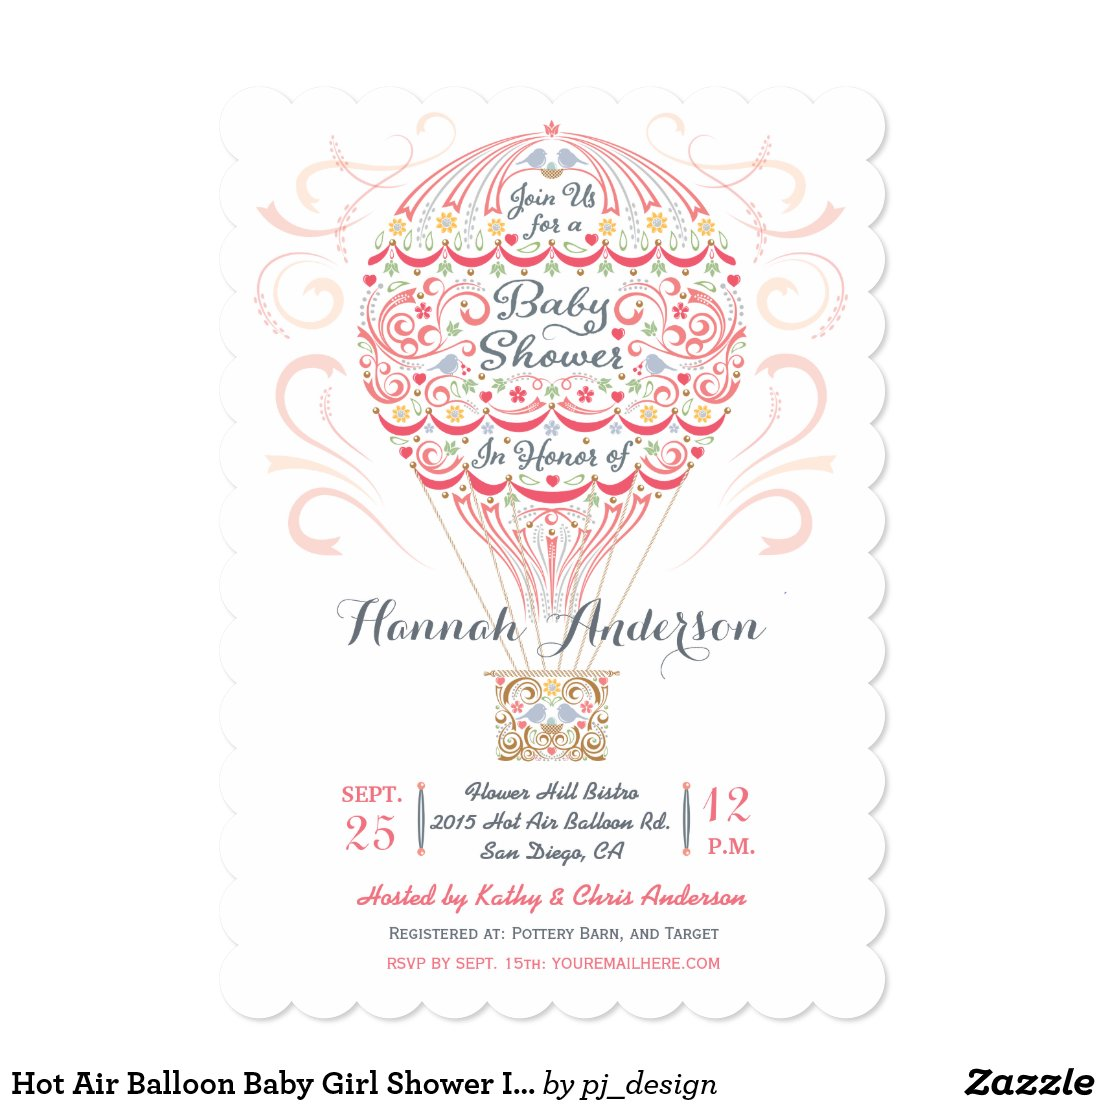 Hot Air Balloon Baby Girl Shower Invitation